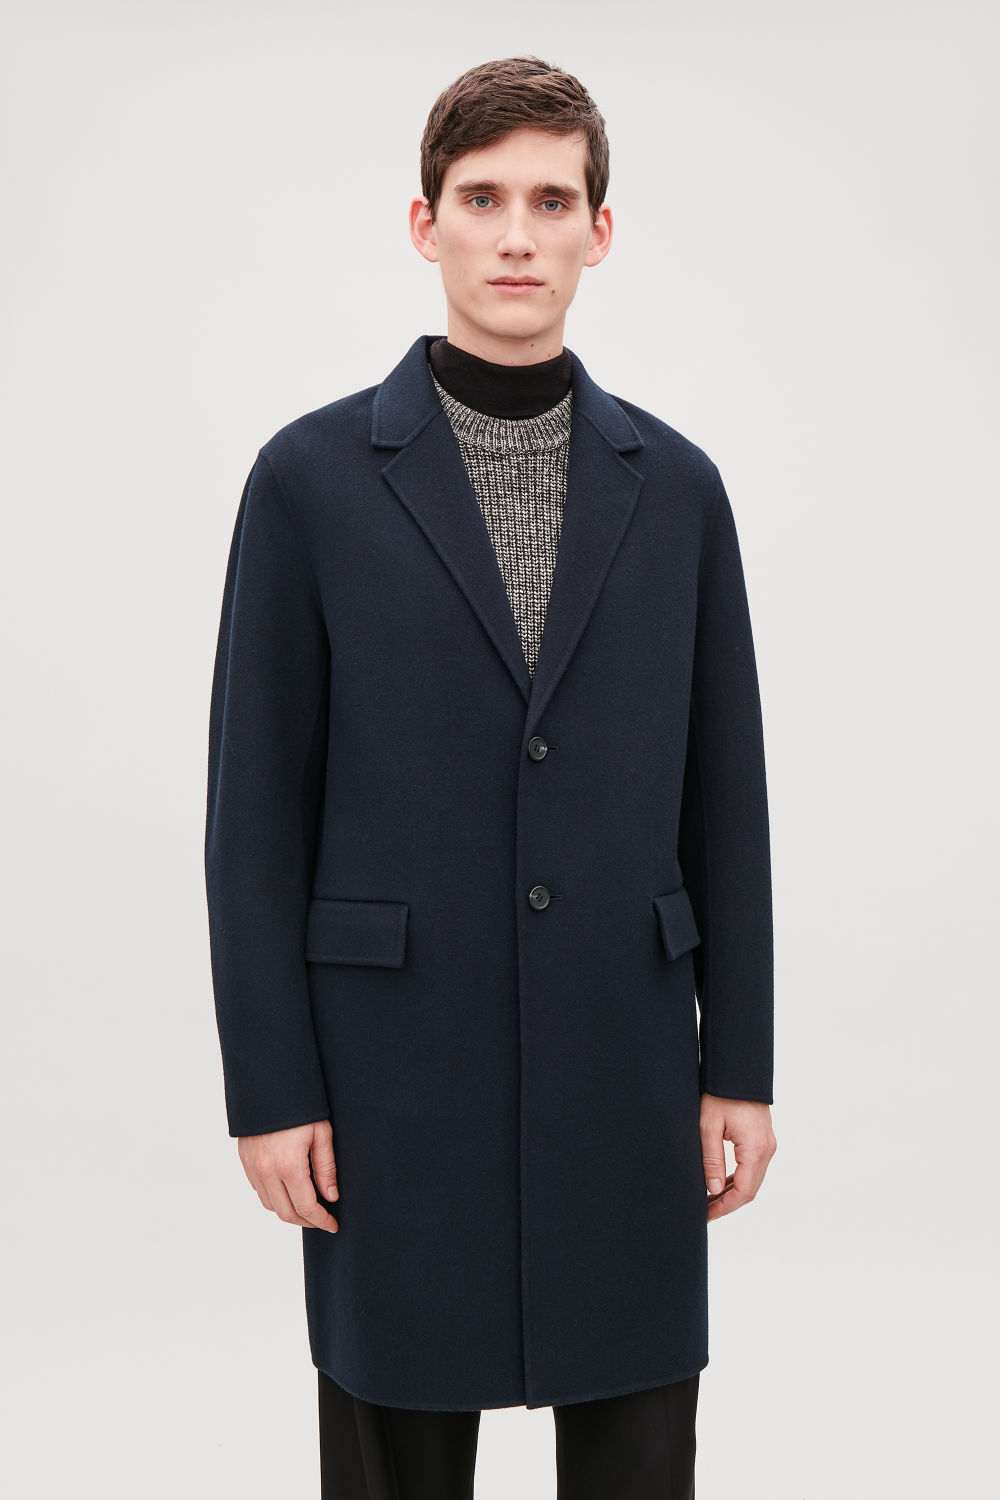 Deconstructed Wool Deconstructed Wool Coat zOx7qBw